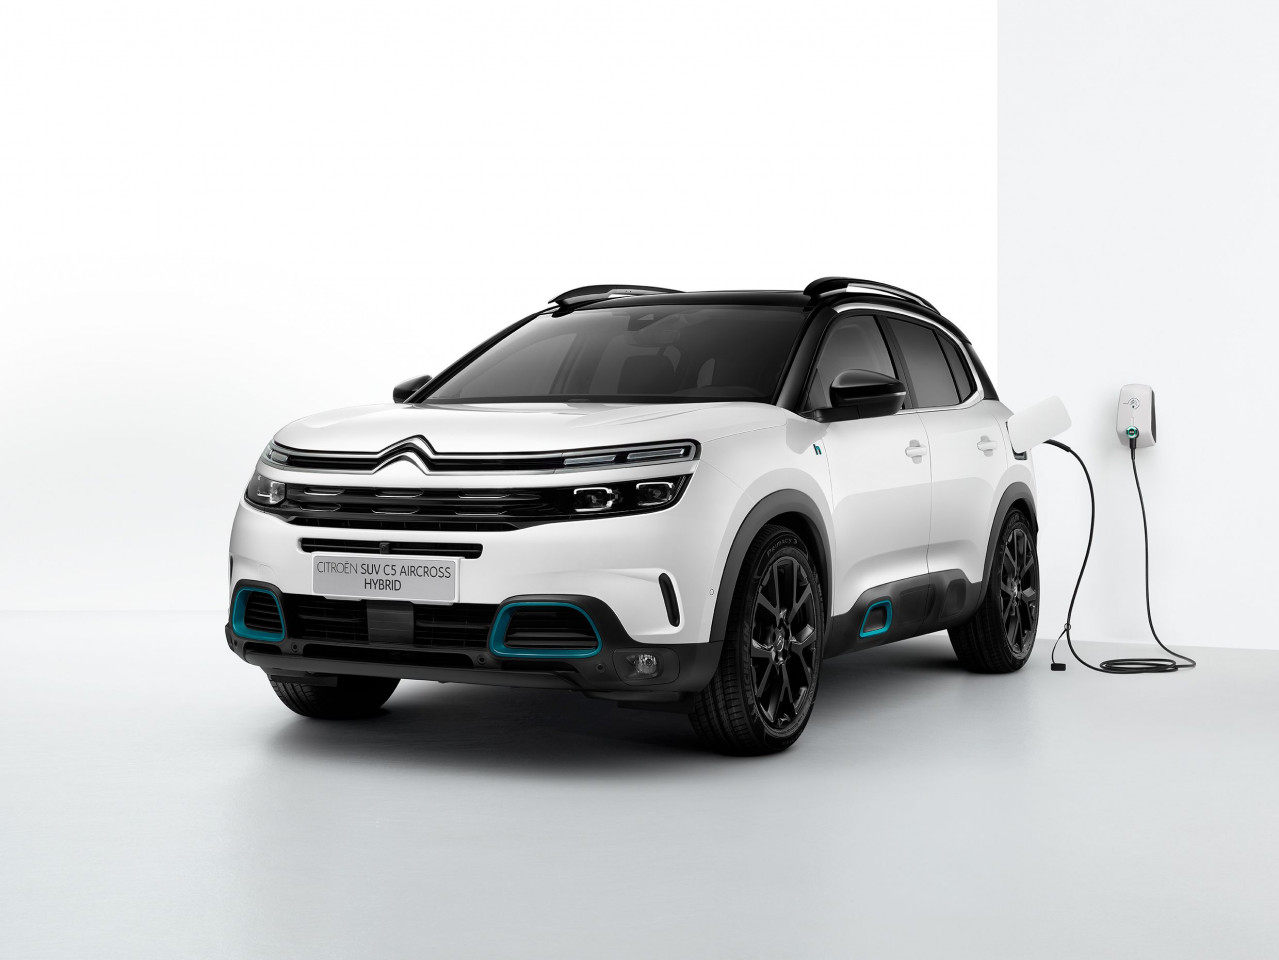 World premiere of the new C5 Aircross SUV Hybrid at 2020 Brussels Motor Show